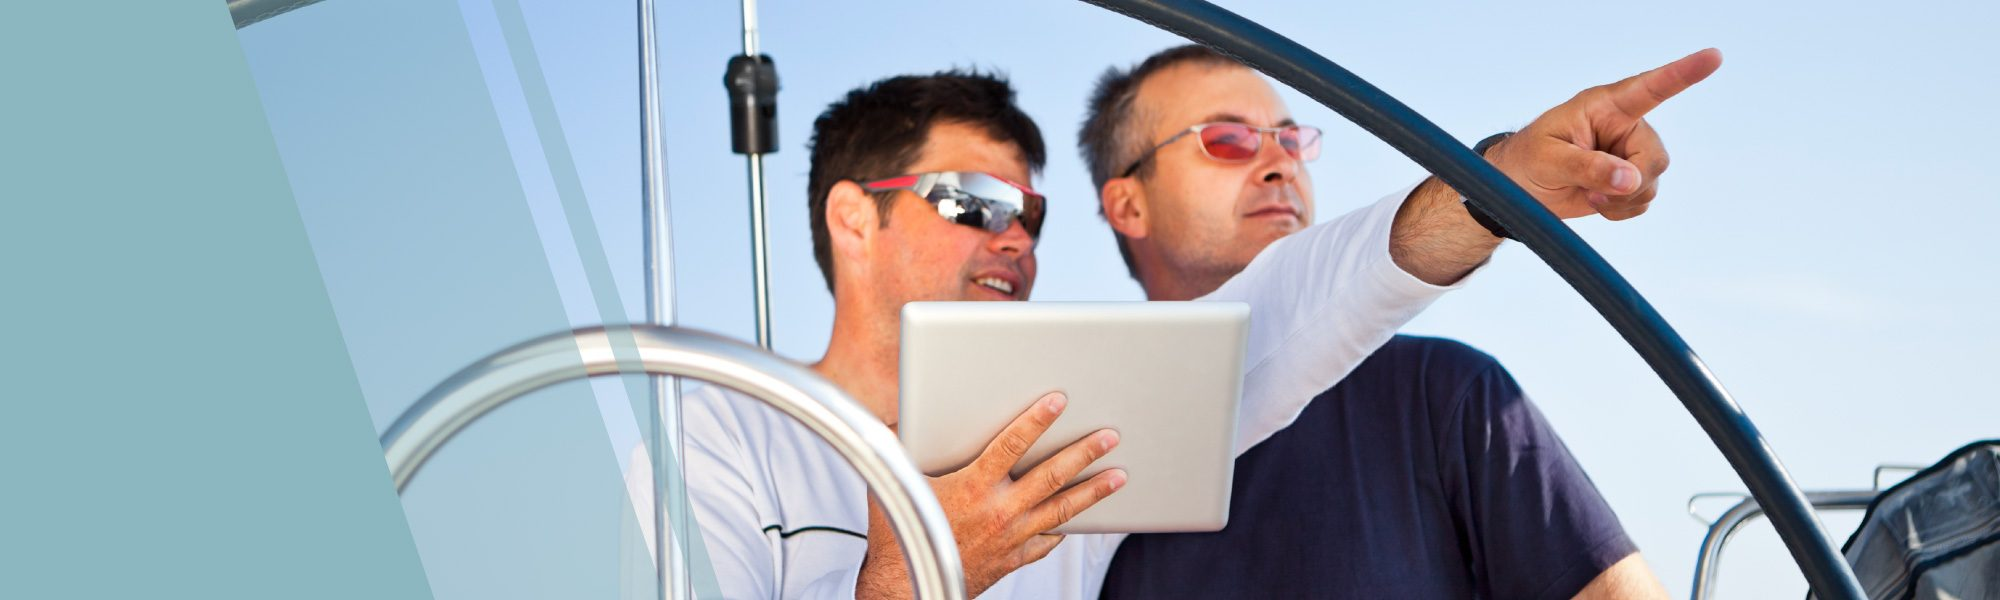 two men pointing from behind sailboat helm